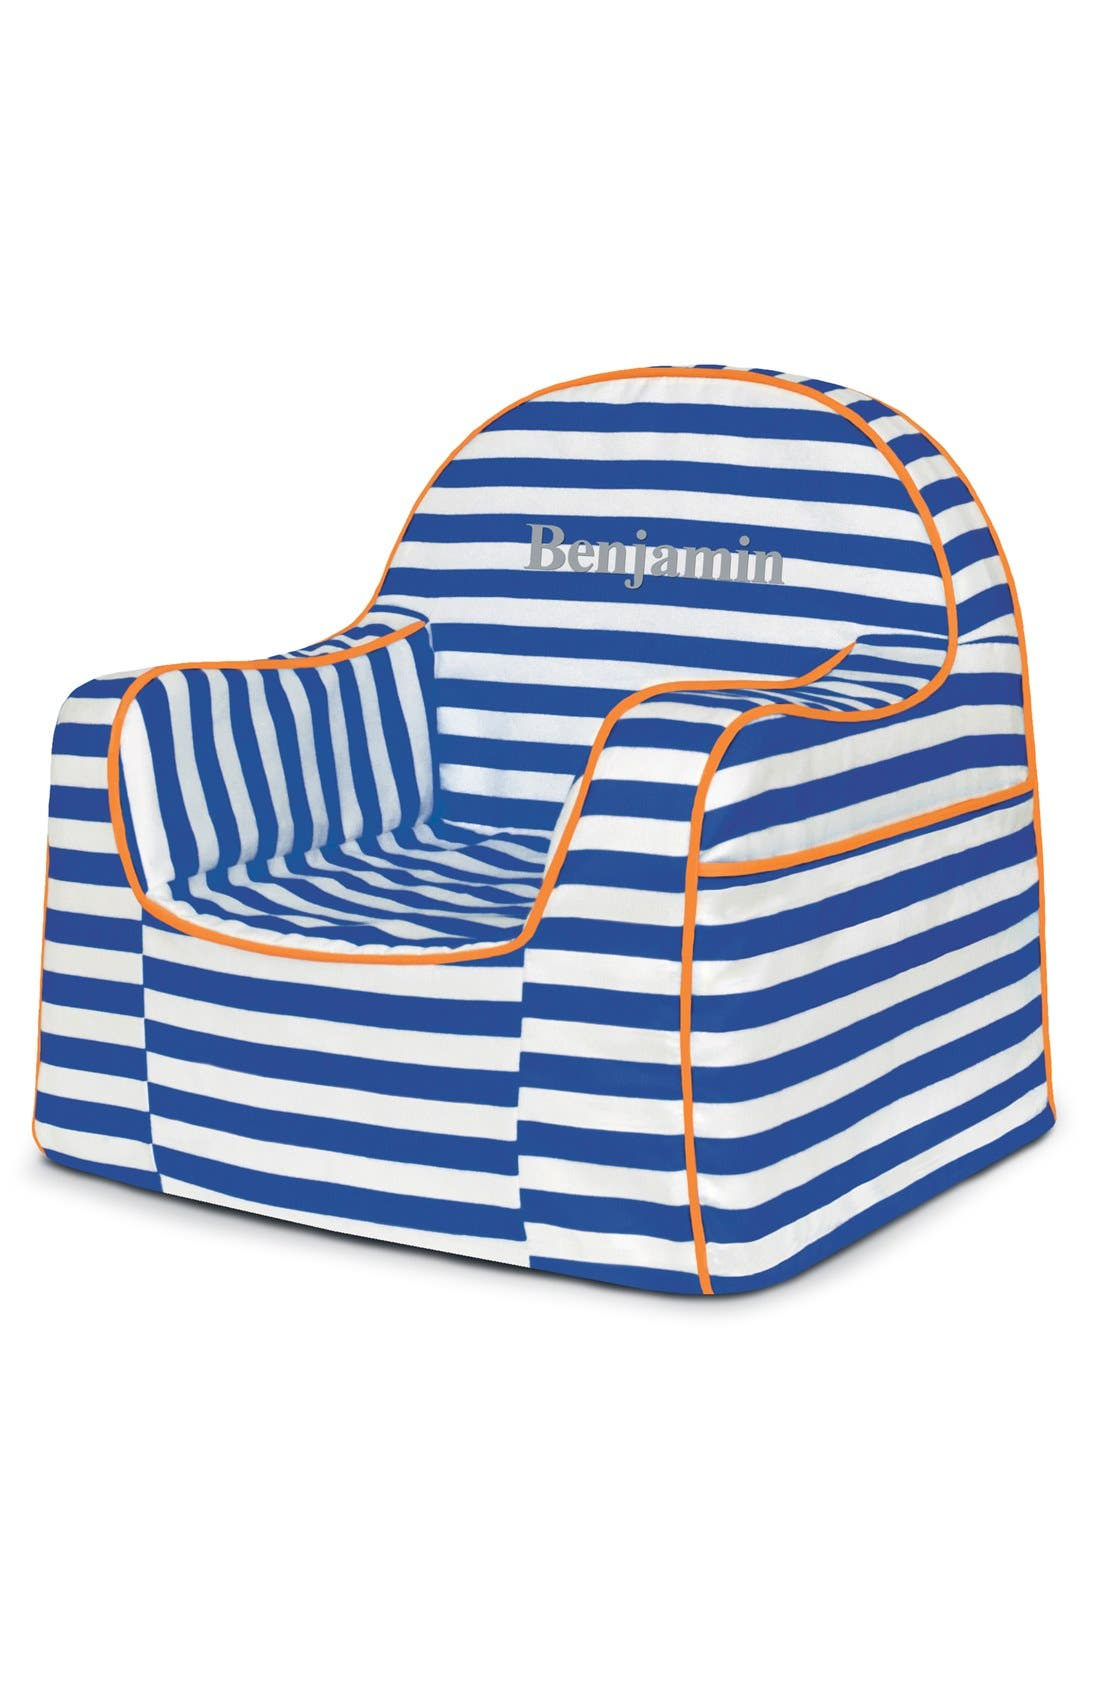 'Personalized Little Reader' Chair,                             Alternate thumbnail 5, color,                             405